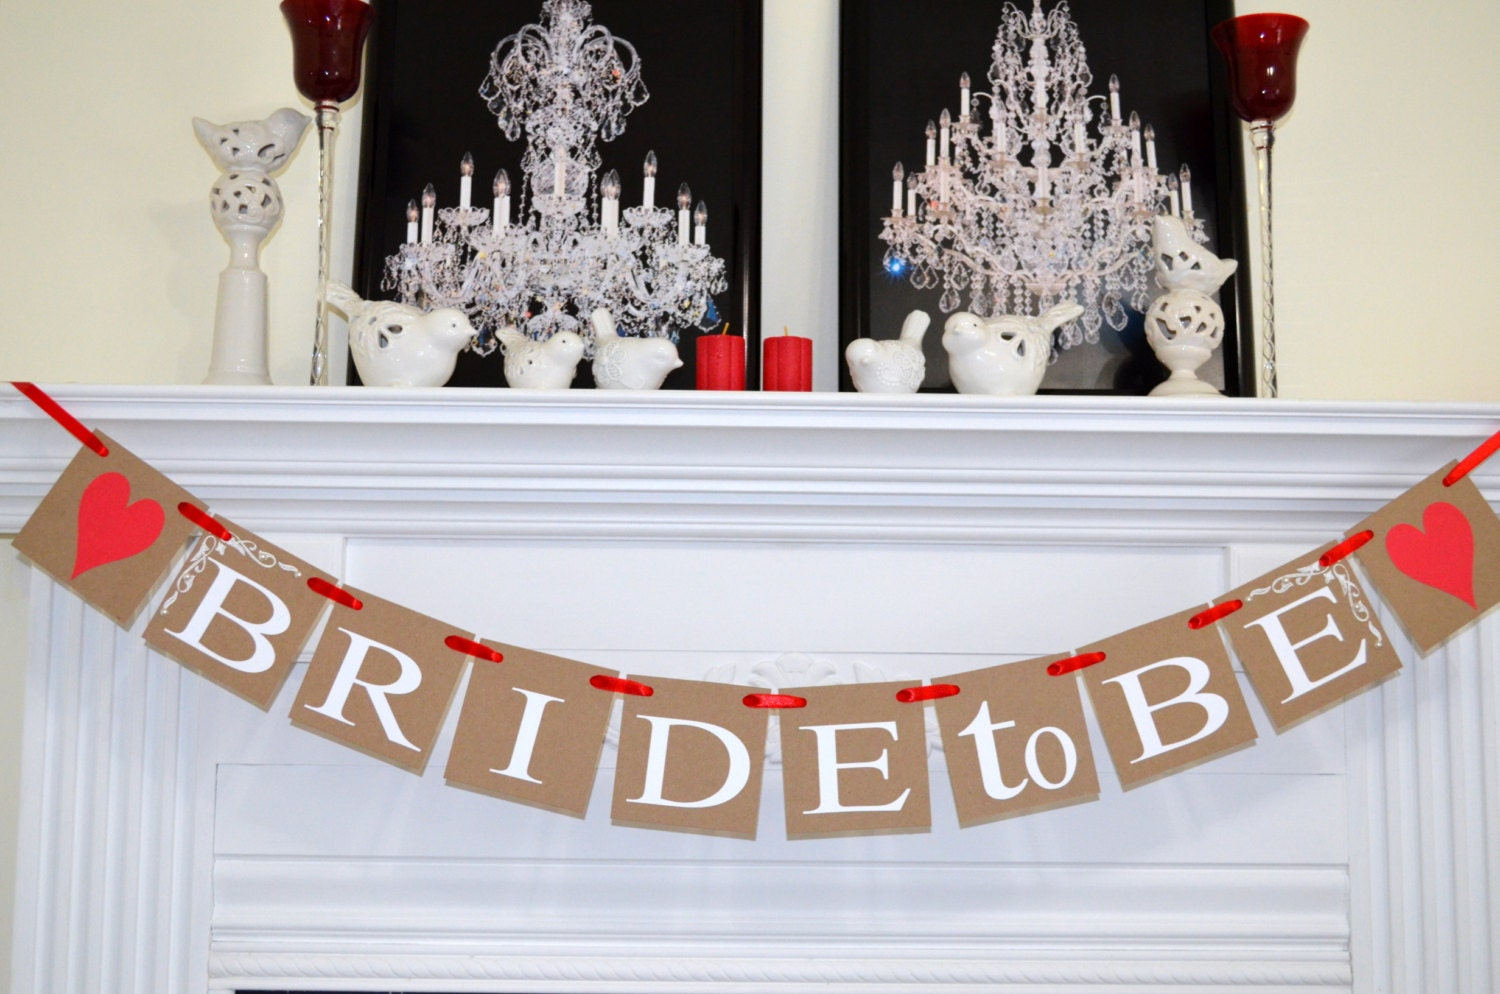 Bride To Be Banner Red Bridal Shower Garland Decor Rustic